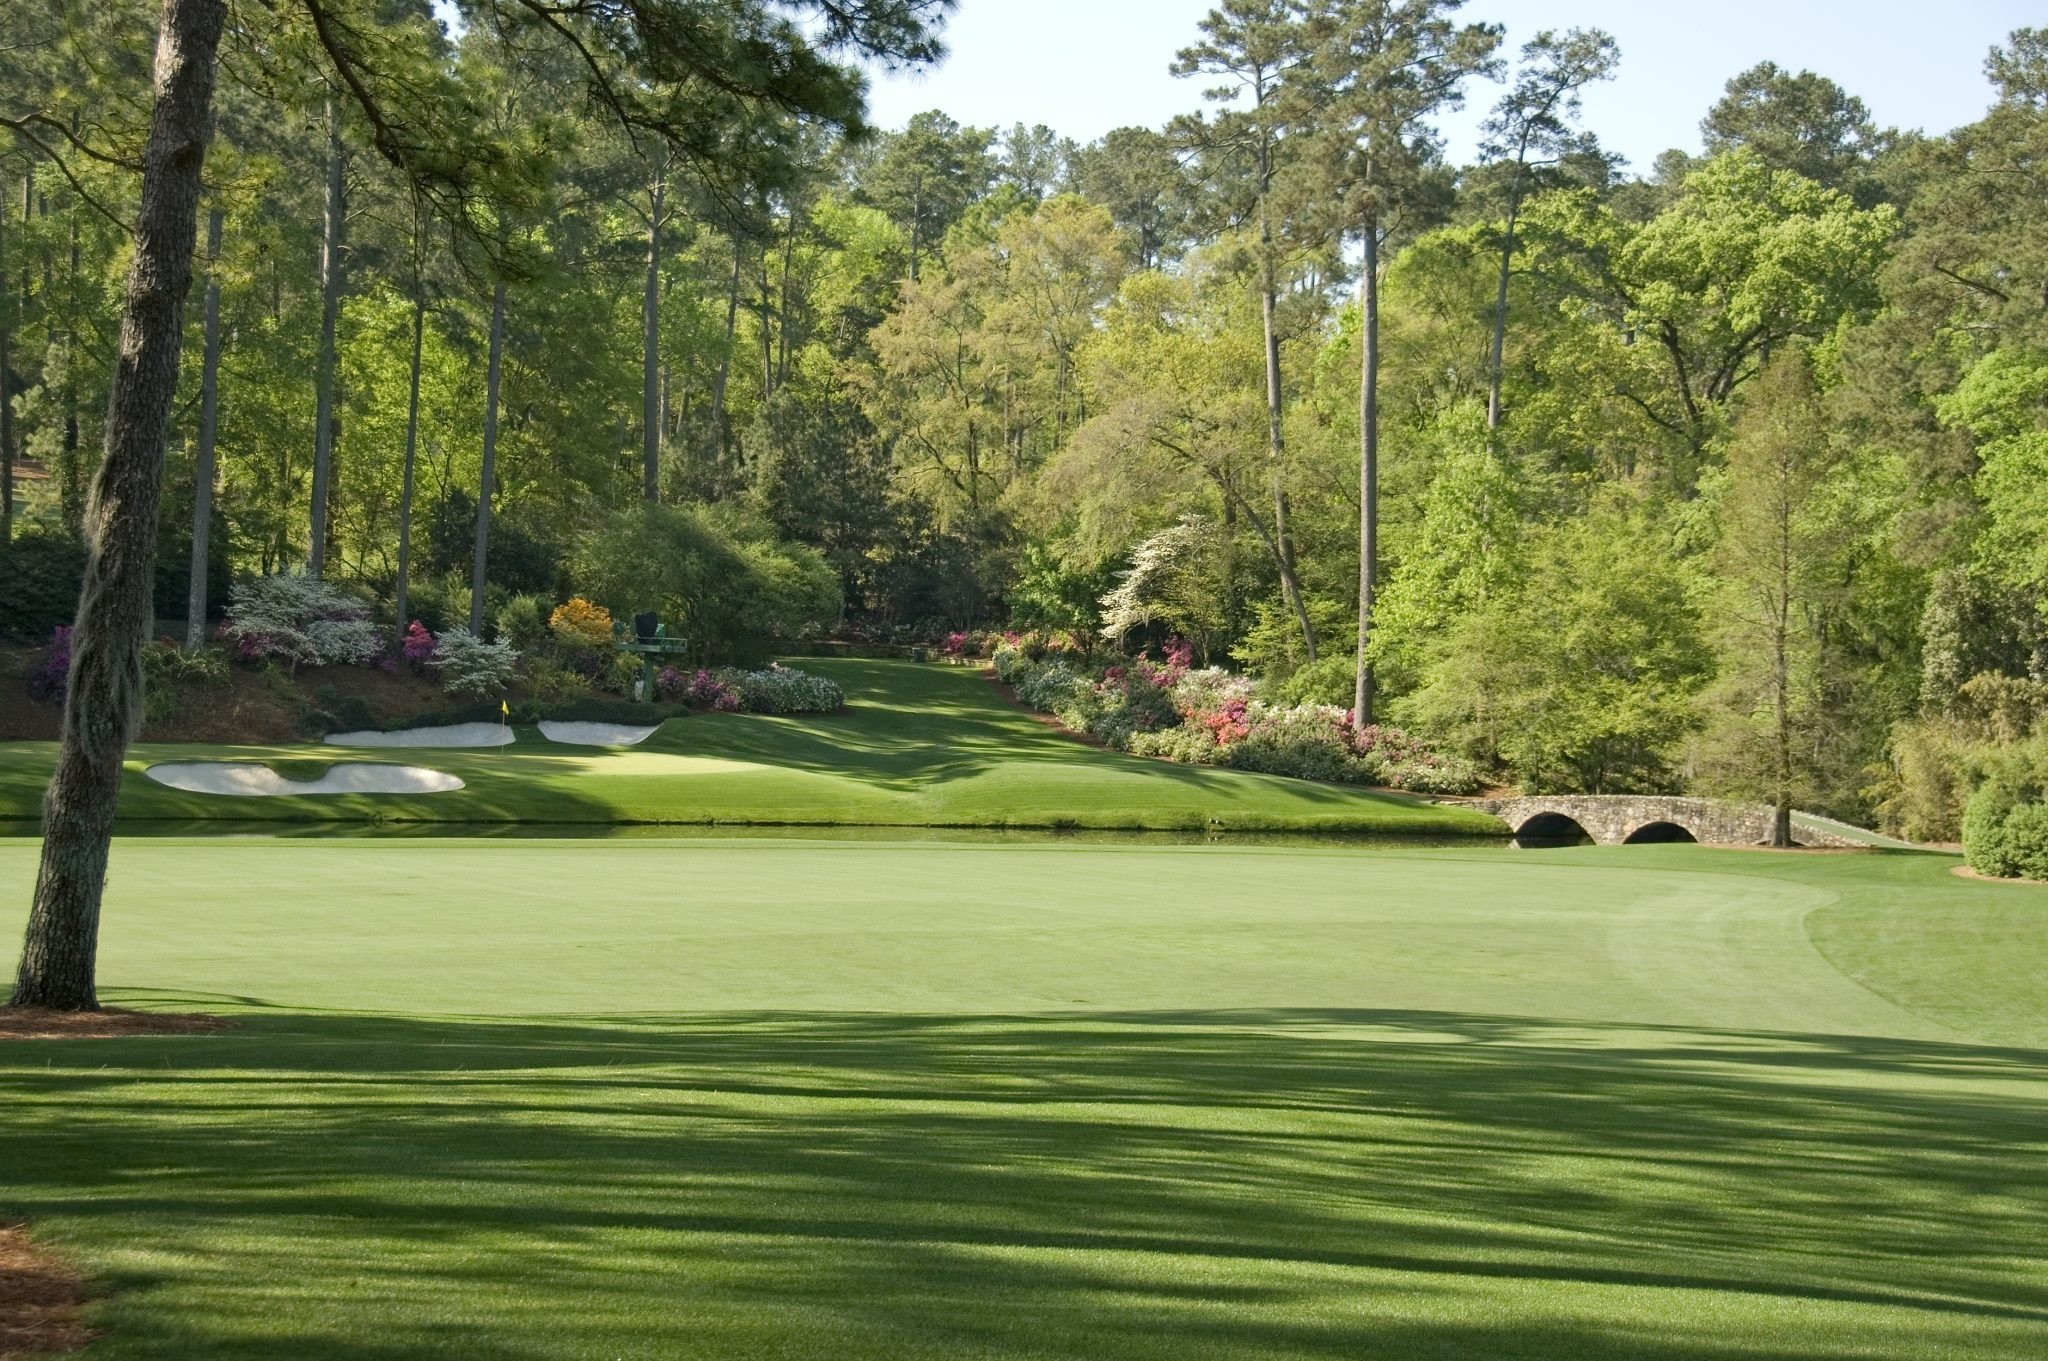 Res: 2048x1361, Augusta National Images - Reverse Search